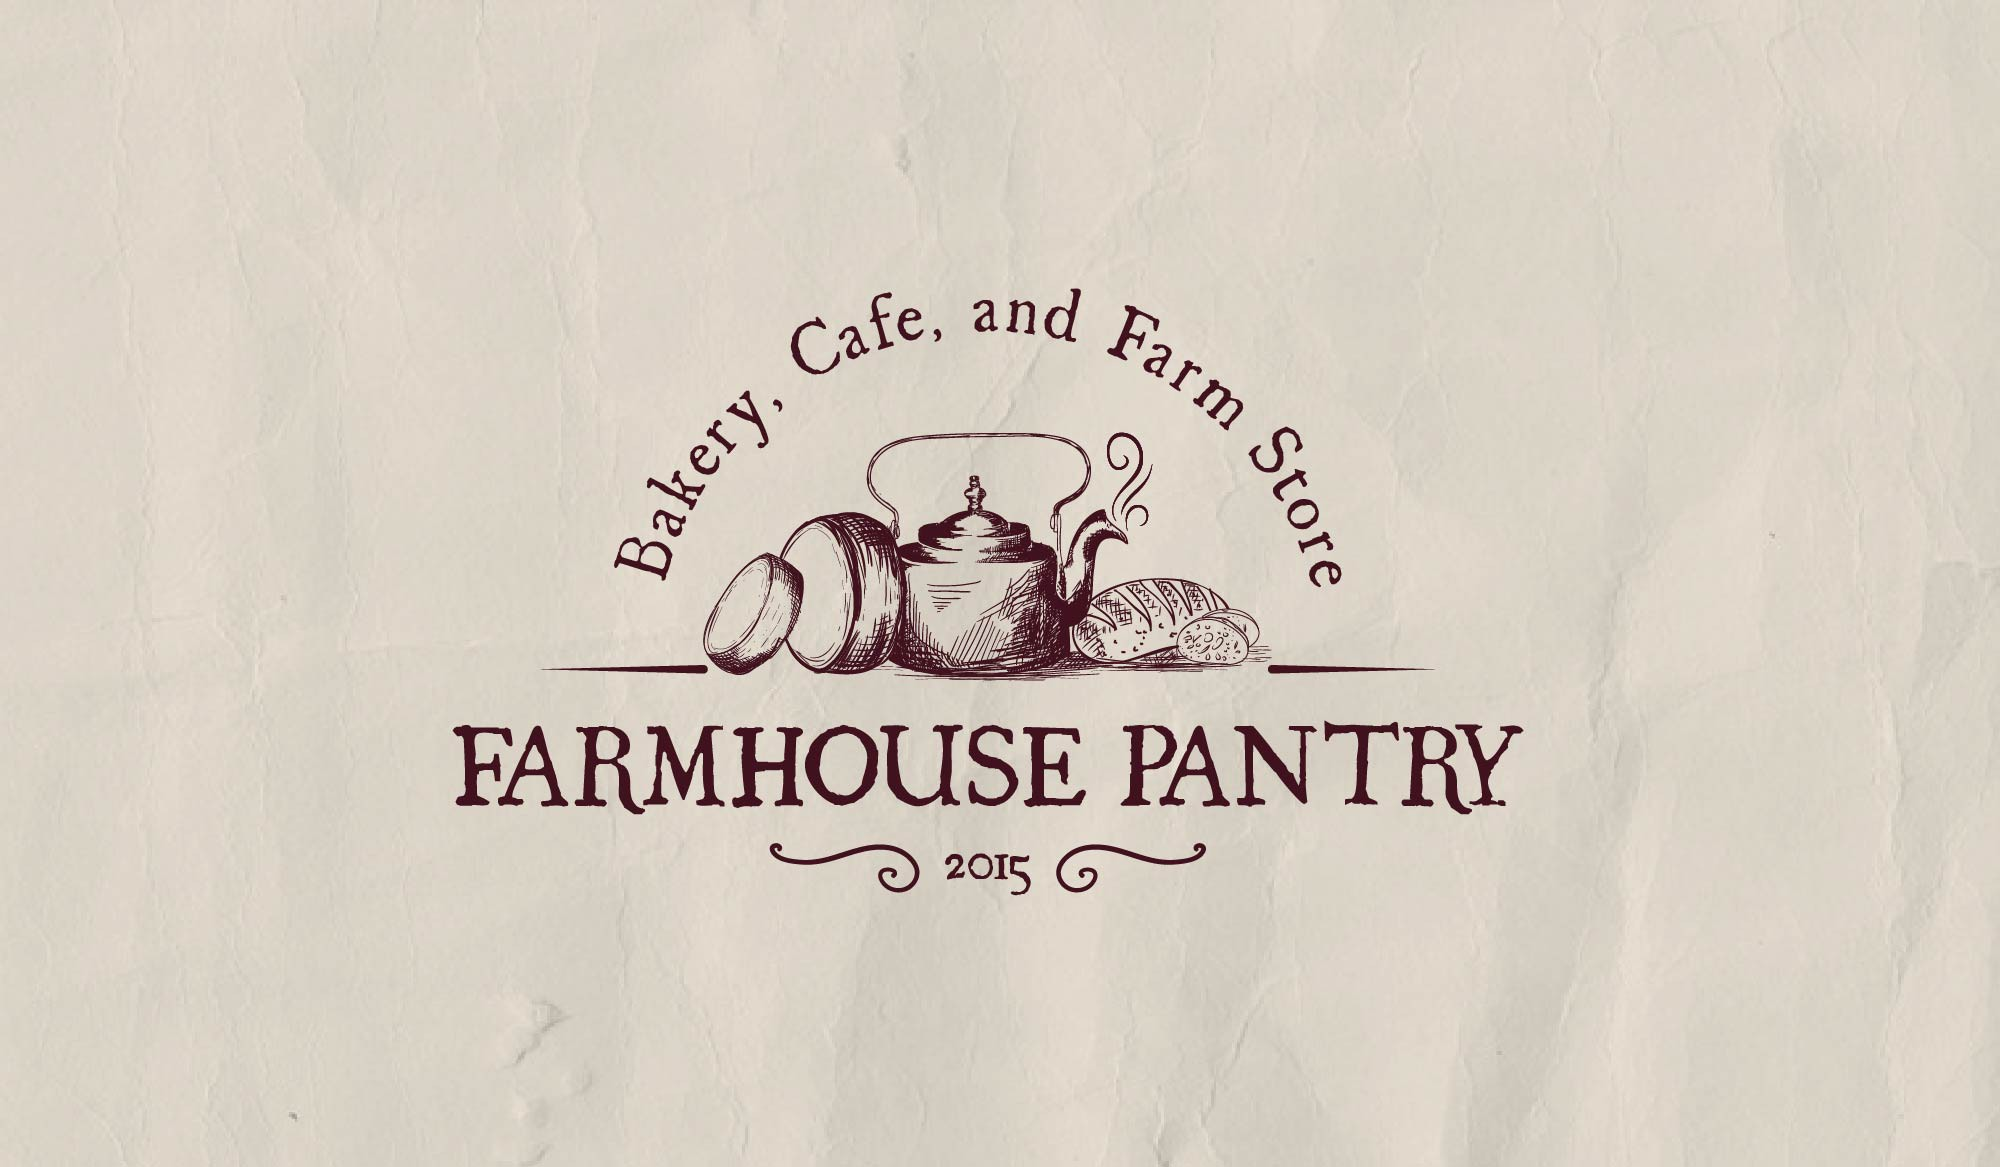 New local-food farm store and bakery in rural setting seeking logo